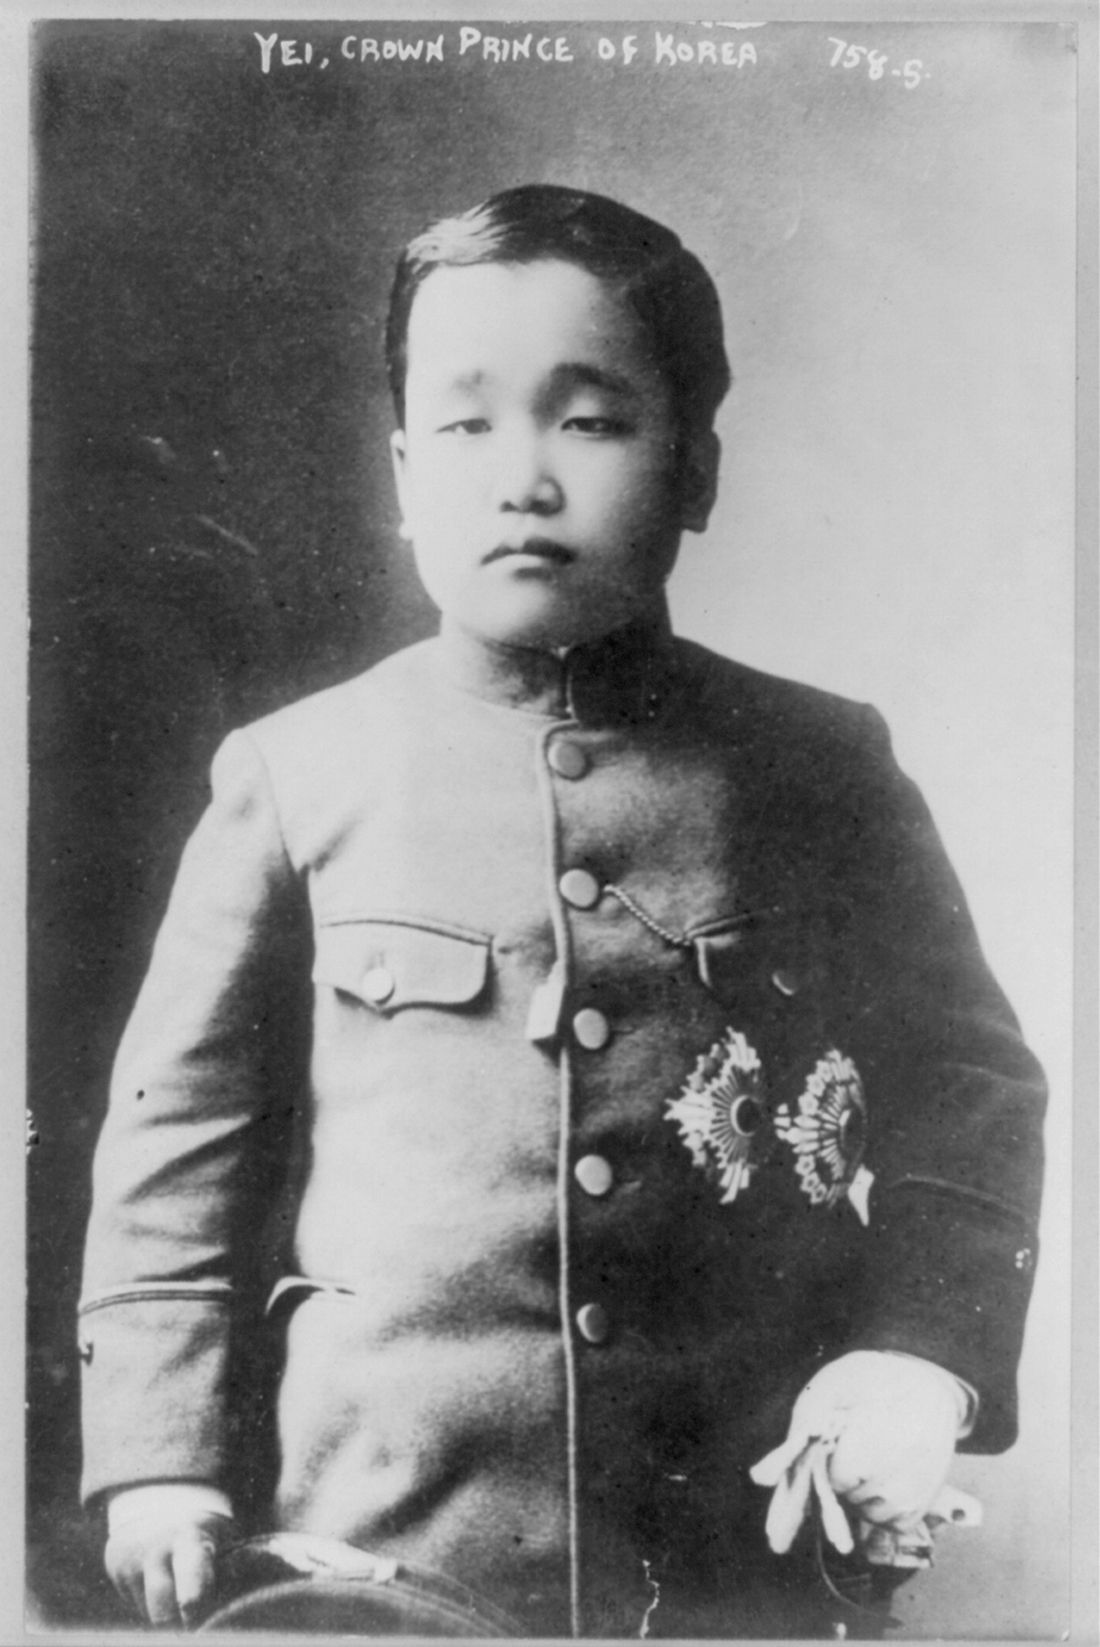 Yi Un, Prince of Korea, 1897-1970, undated c1907. Bain Collection, Library of Congress